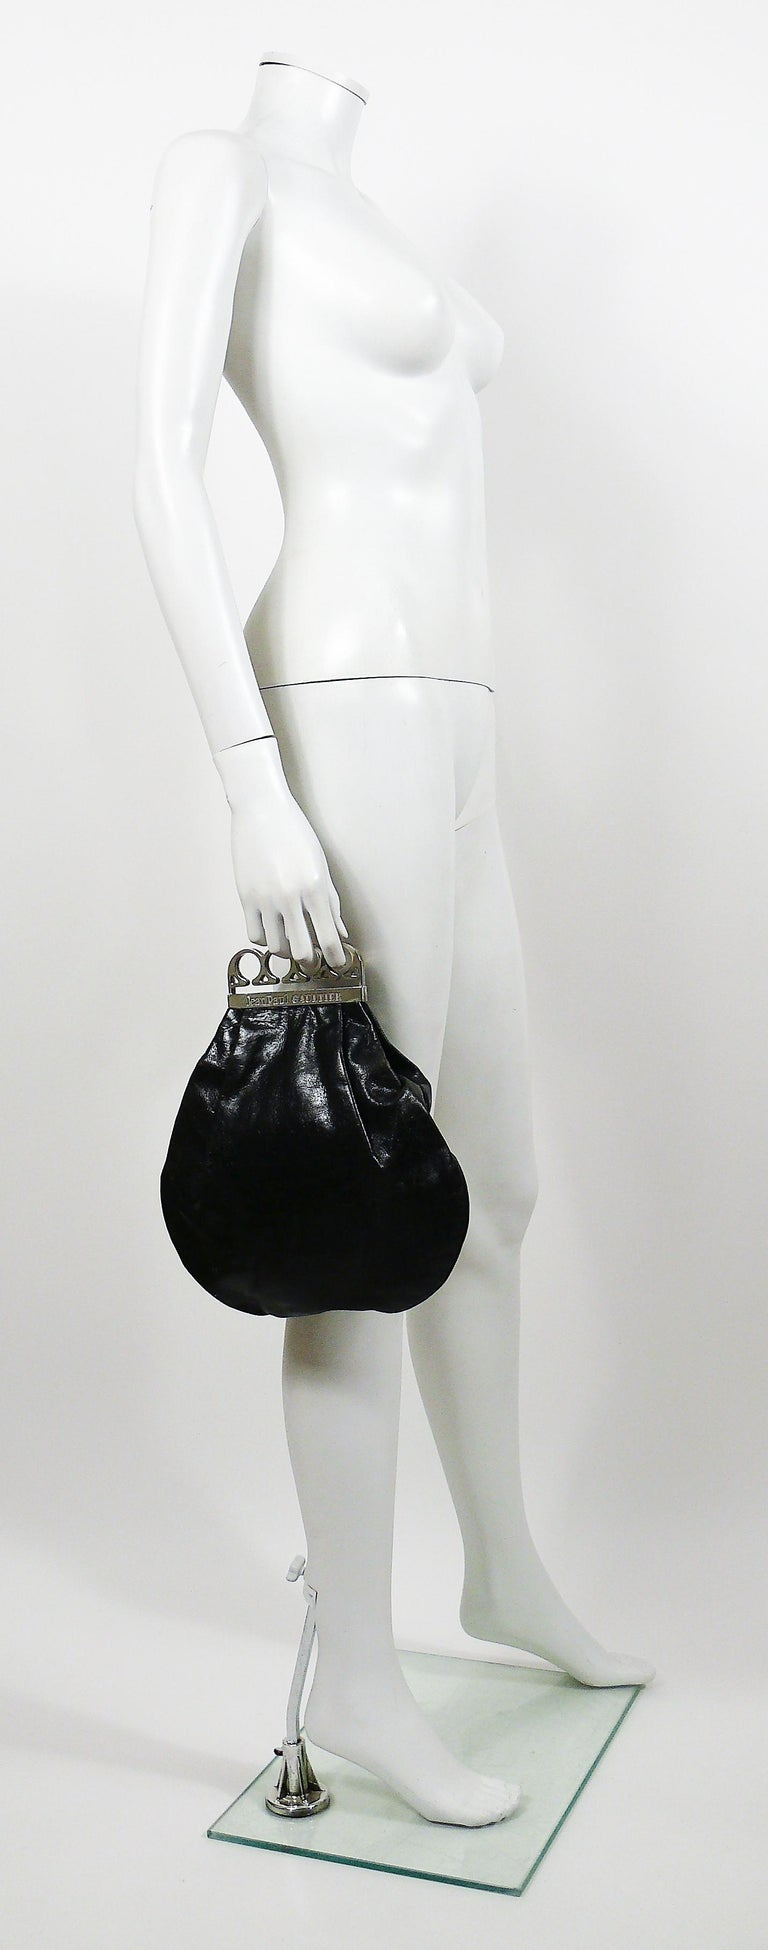 JEAN PAUL GAULTIER vintage rare black distressed leather knuckle duster clutch.  This clutch features : - Black distressed leather body. - Polished silver toned knuckle duster handle embossed JEAN PAUL GAULTIER. - Magnetic closure. - One inner